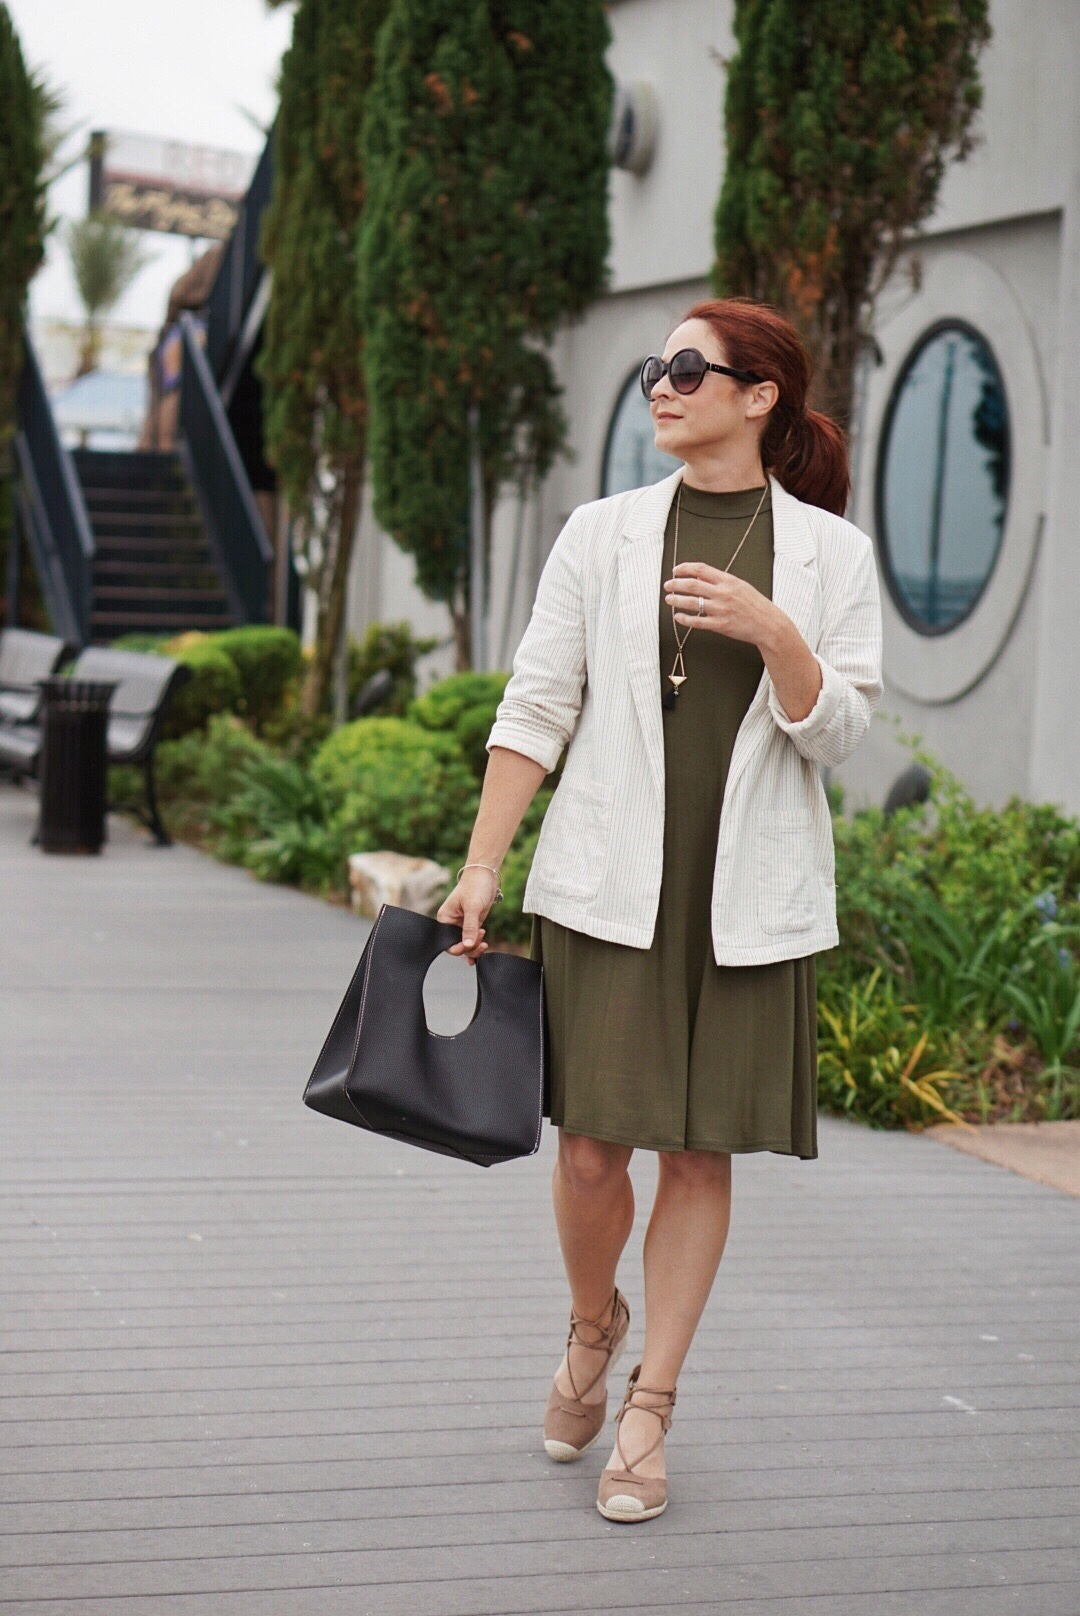 outfit ideas for summer to fall, transitional pieces, cream blazers, swing dress, black bags, wedges,